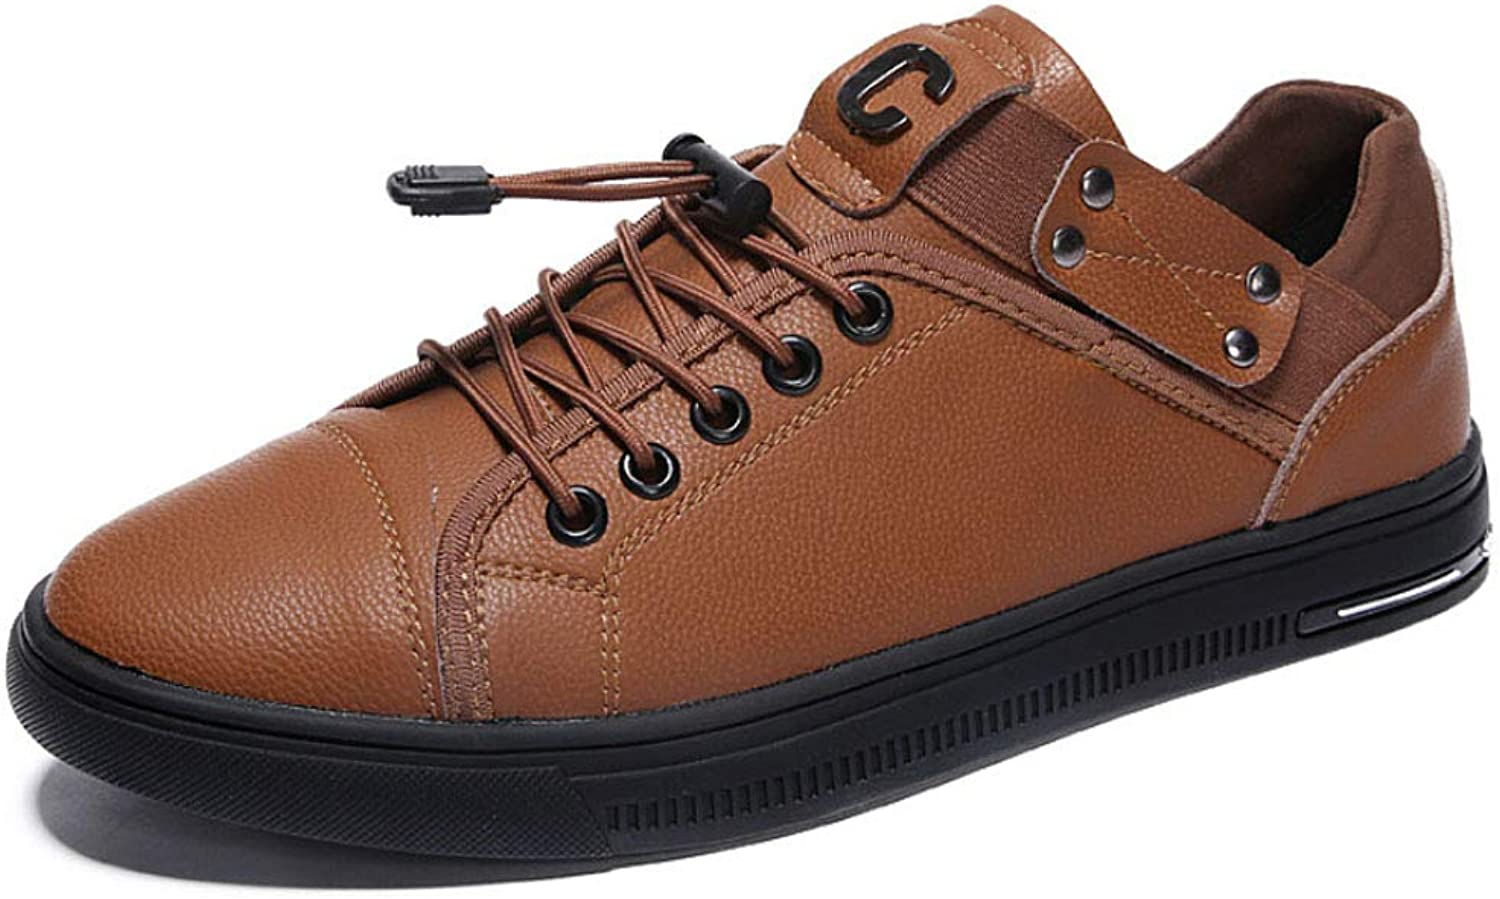 Leather shoes, Leather Retro Casual shoes, Men